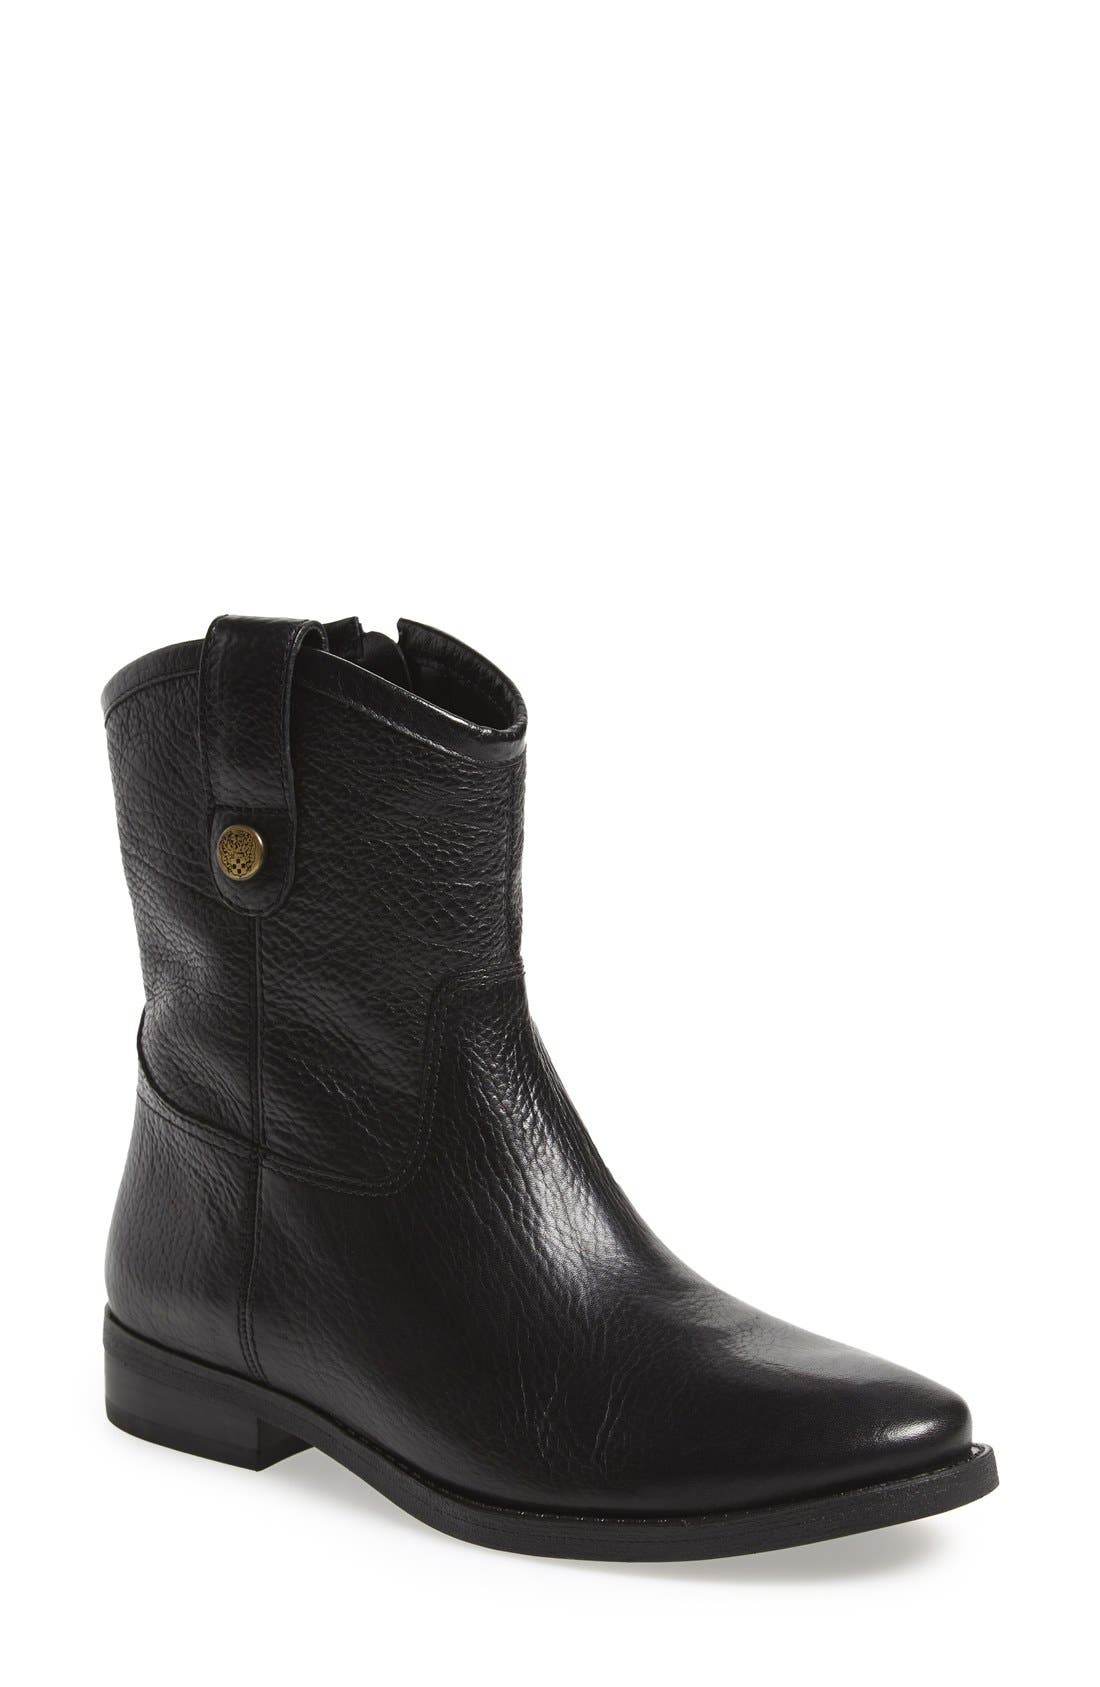 'Payatt' Short Riding Boot, Main, color, 001